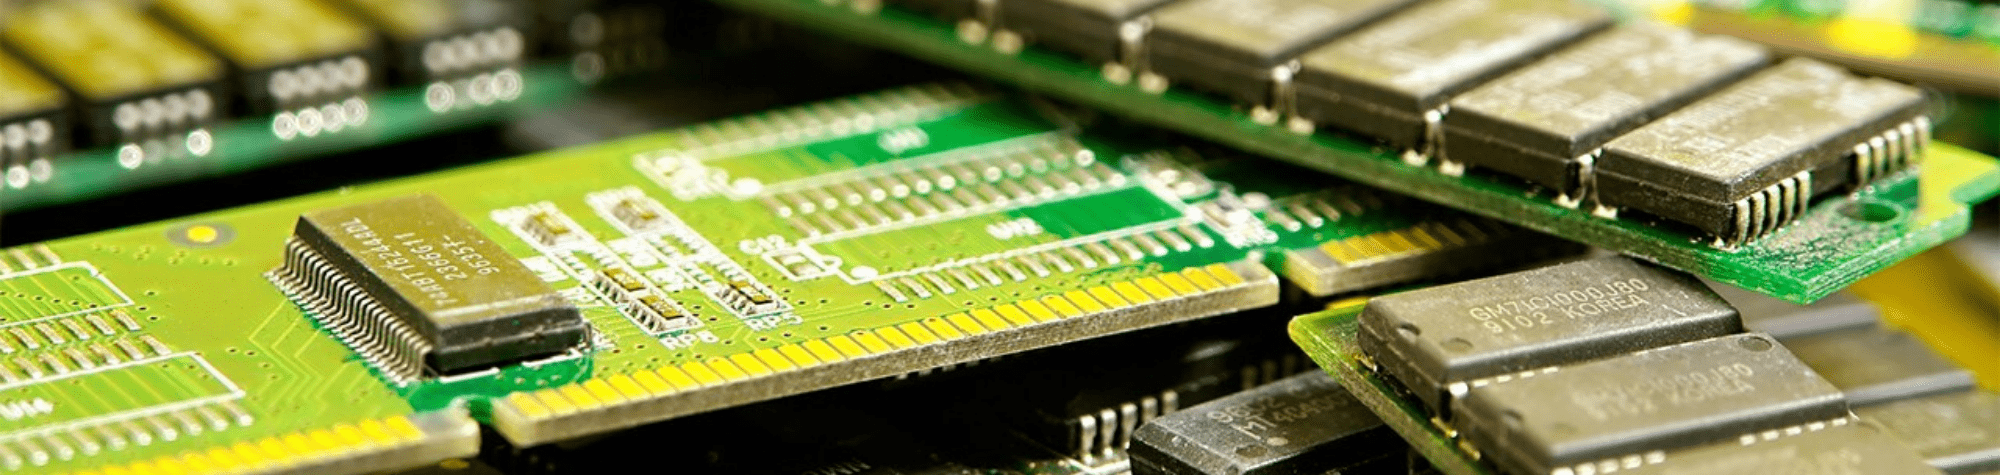 DDR5 Brings Dual-Channel Memory on a Single Stick